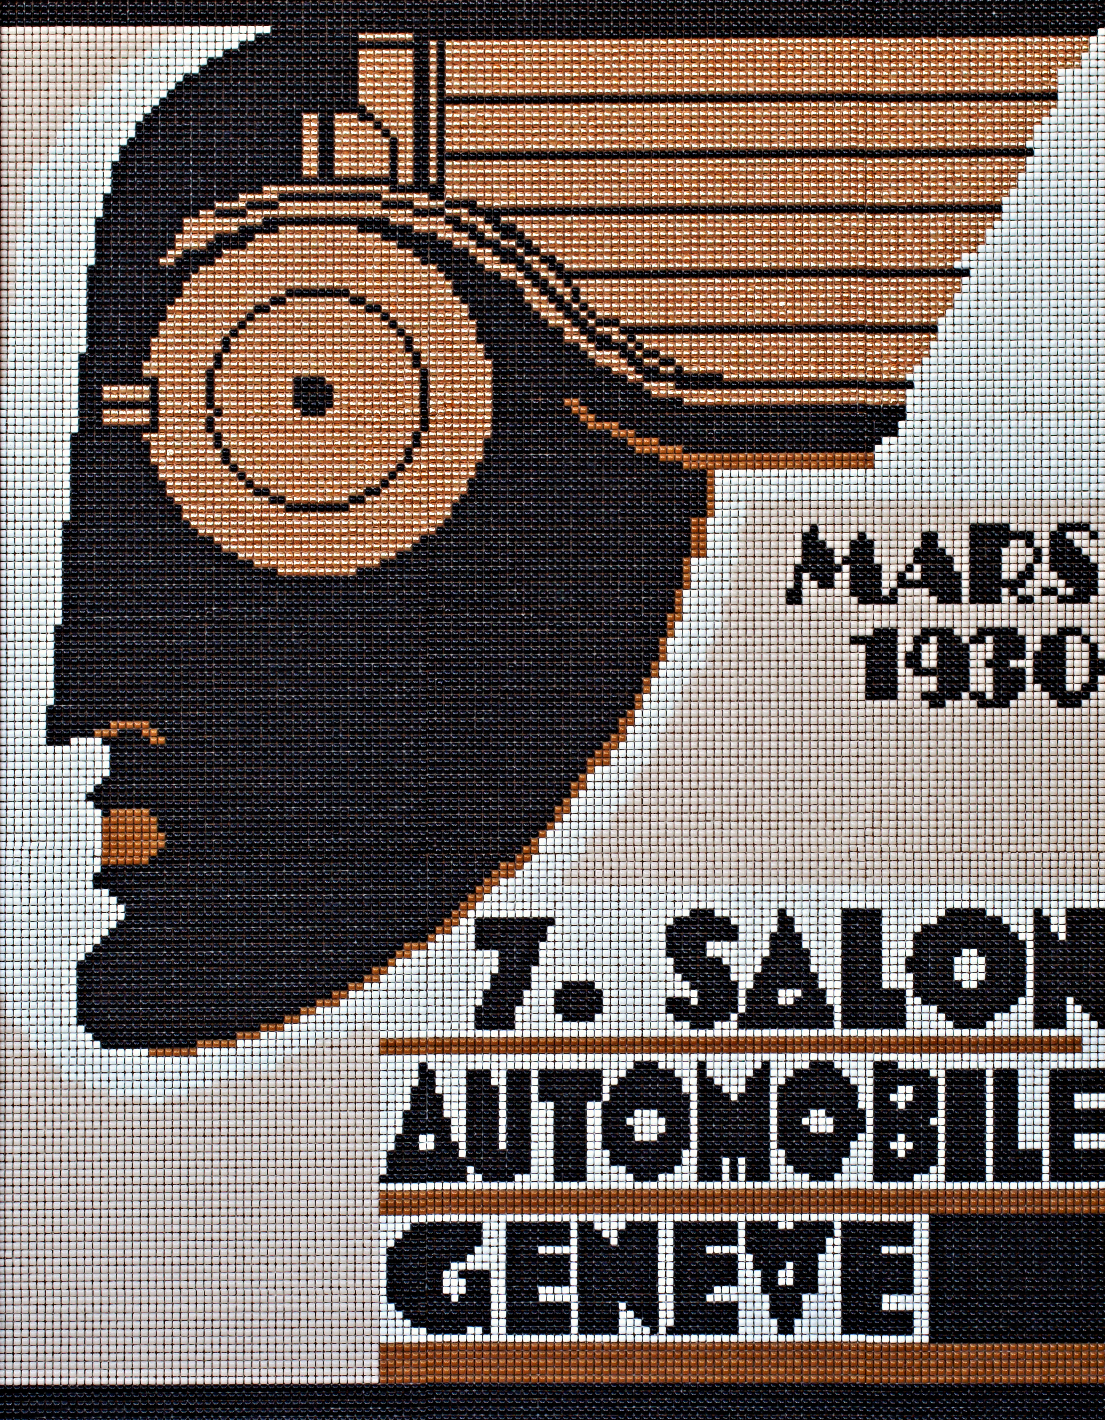 7. Salon Automobile Geneve